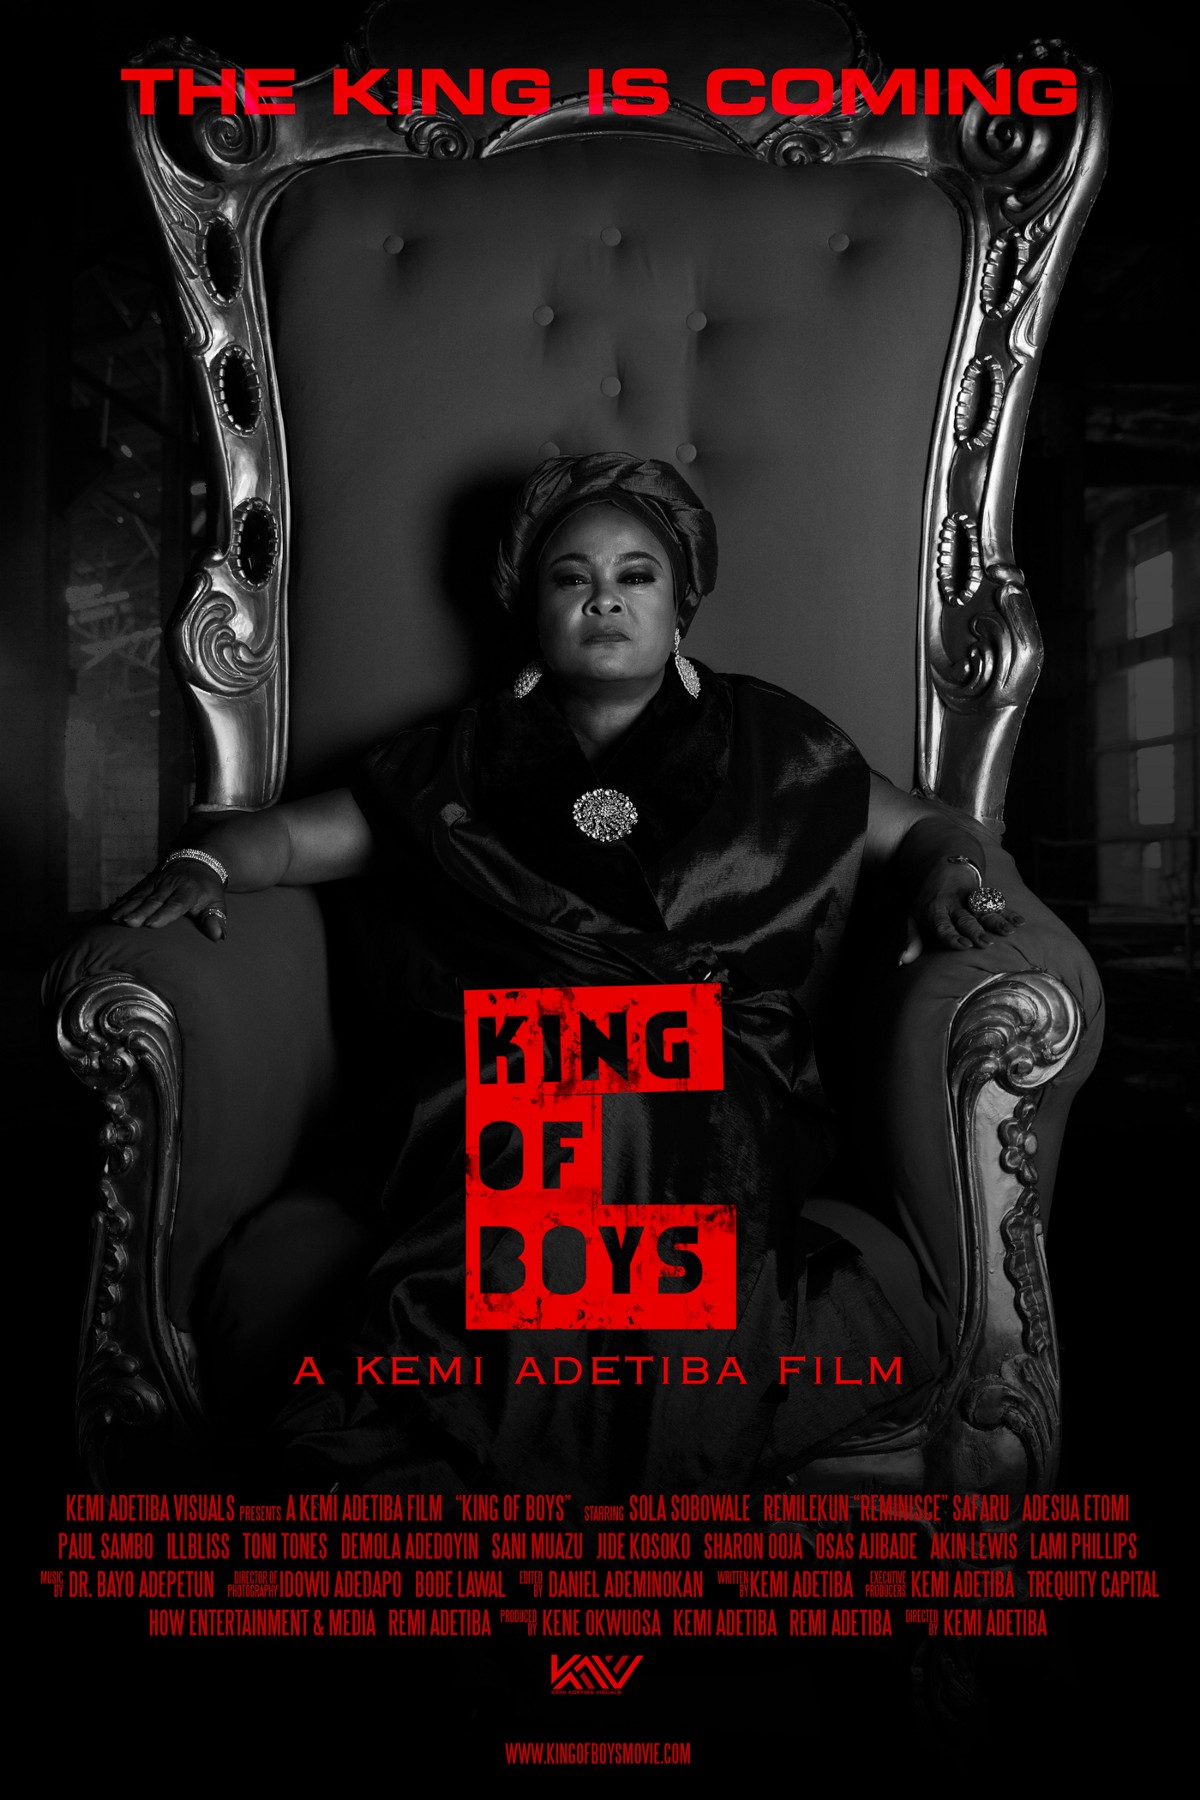 King of Boys: An unvarnished look into the seedy underbelly